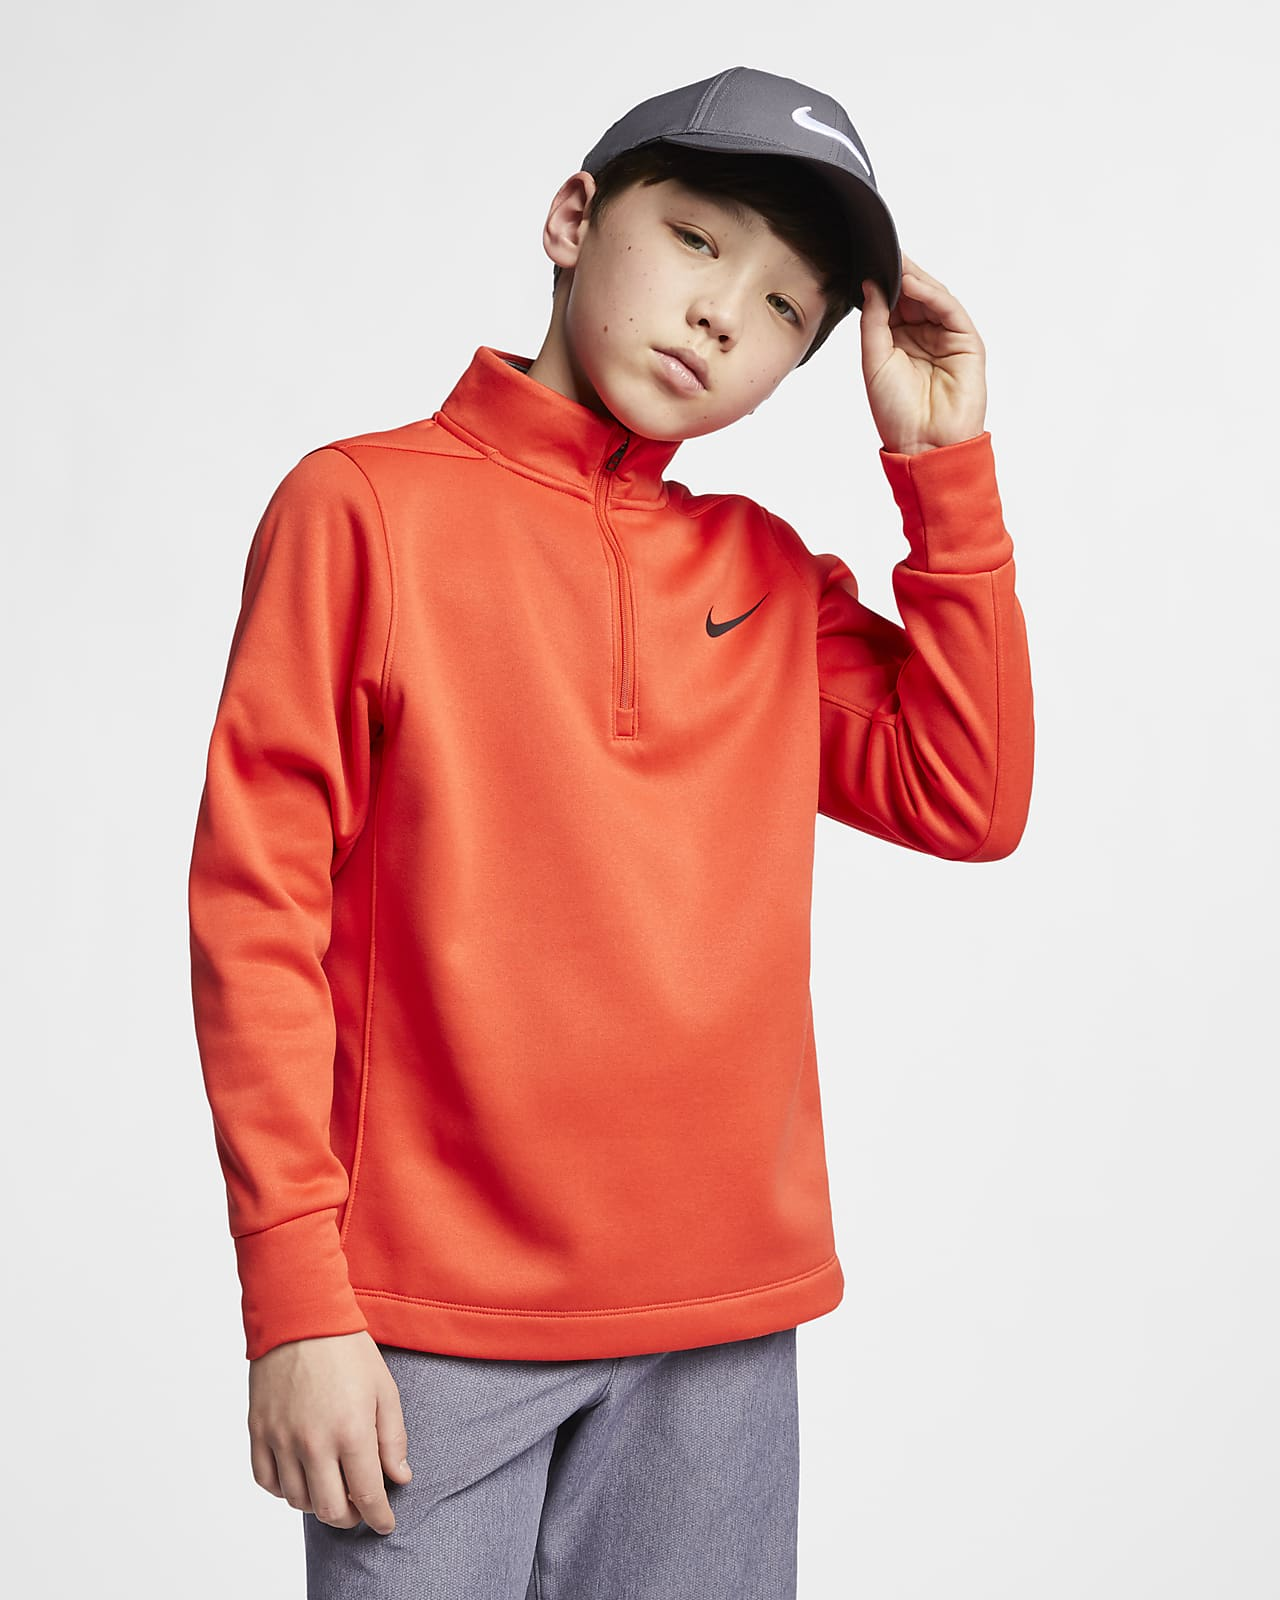 Nike Dri-FIT Therma Big Kids' (Boys') Half-Zip Golf Top